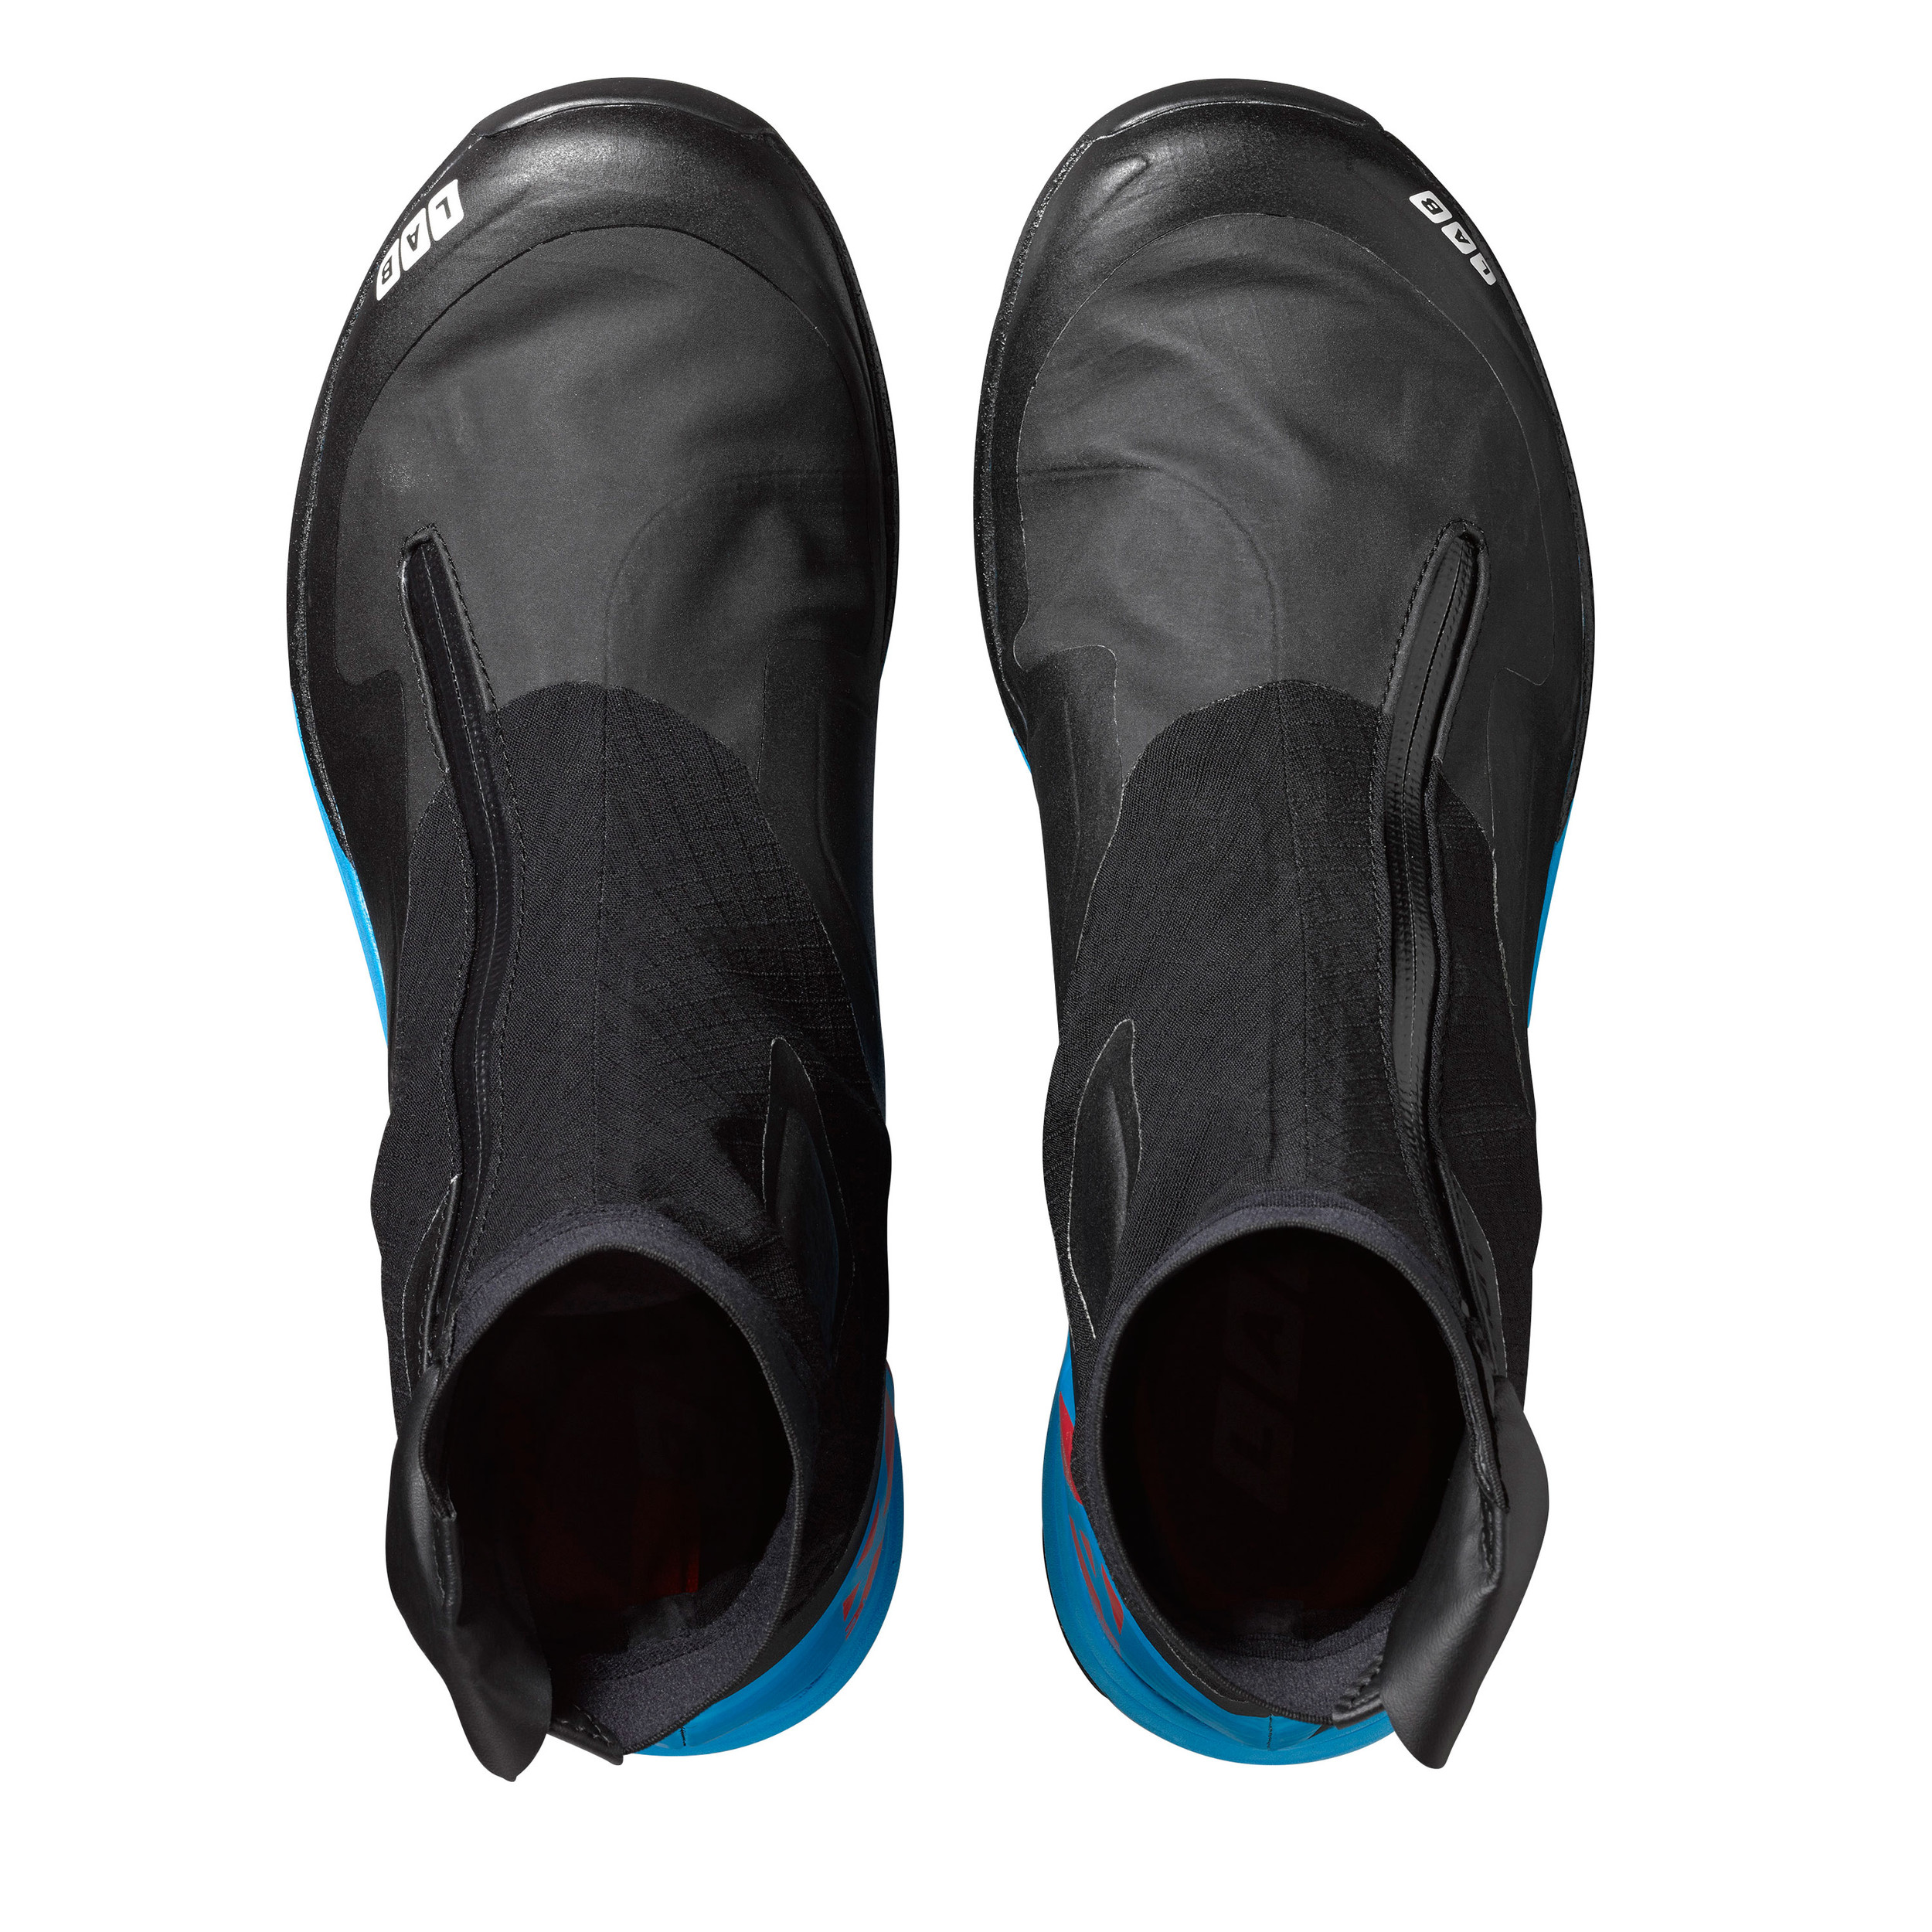 13ea88f80e1 The outsole is made with a Premium Wet Traction Contagrip which is a  durable rubber compound that covers the platform of the Salomon S LAB XA  Alpine.